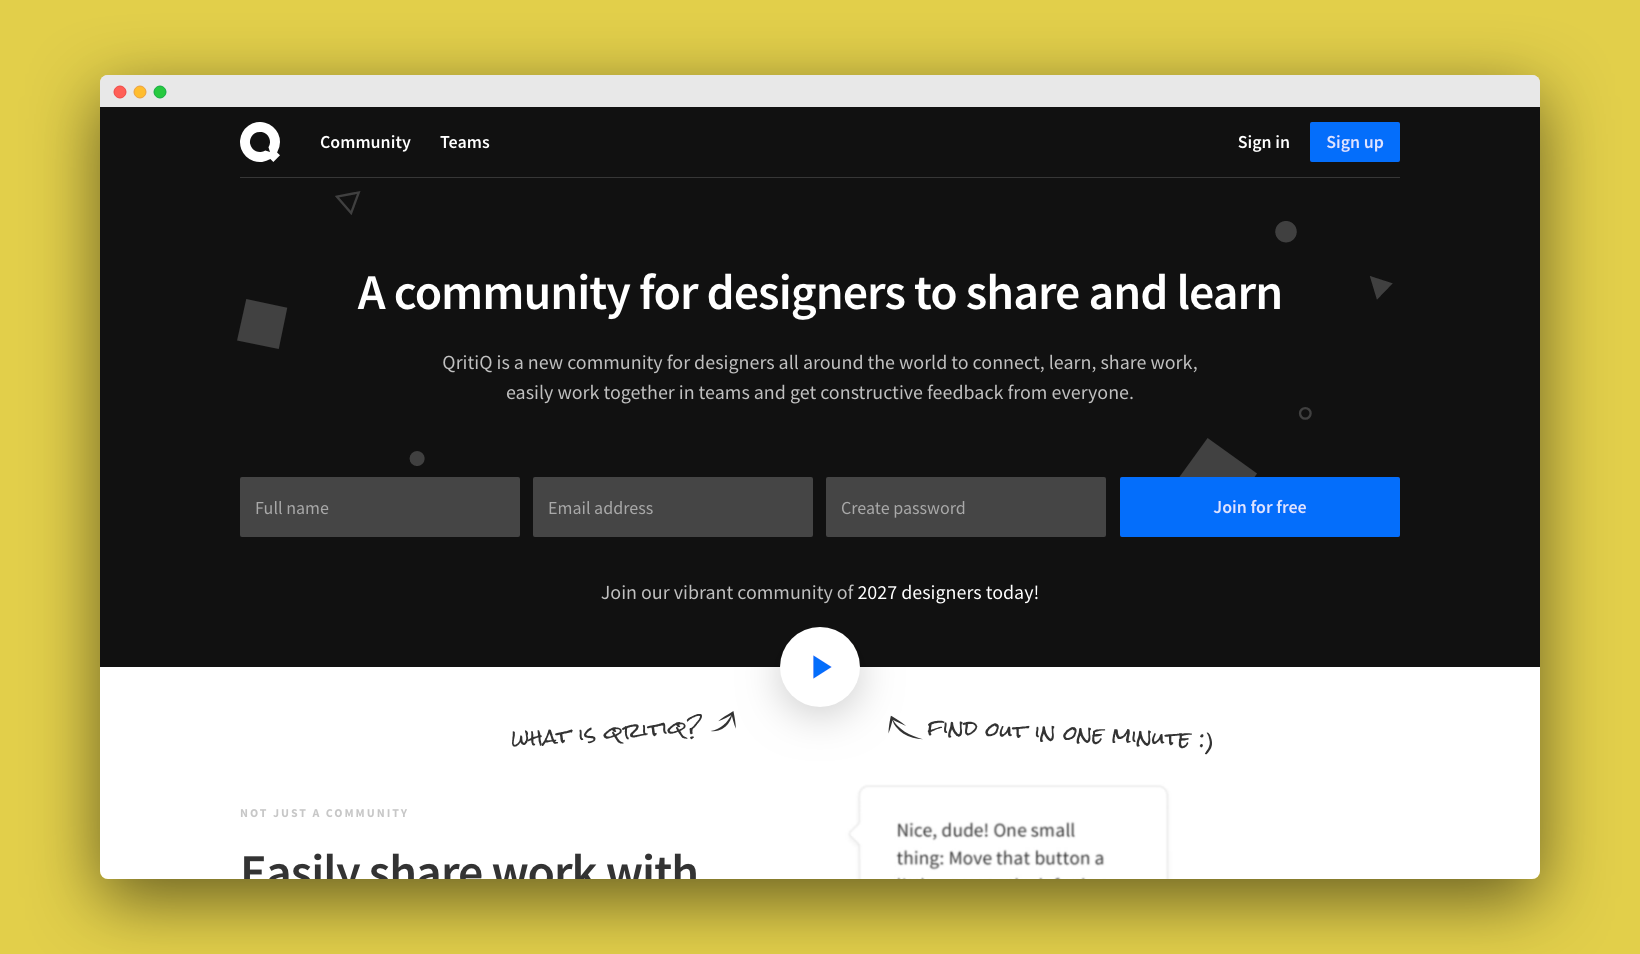 A community for designers to share and learn